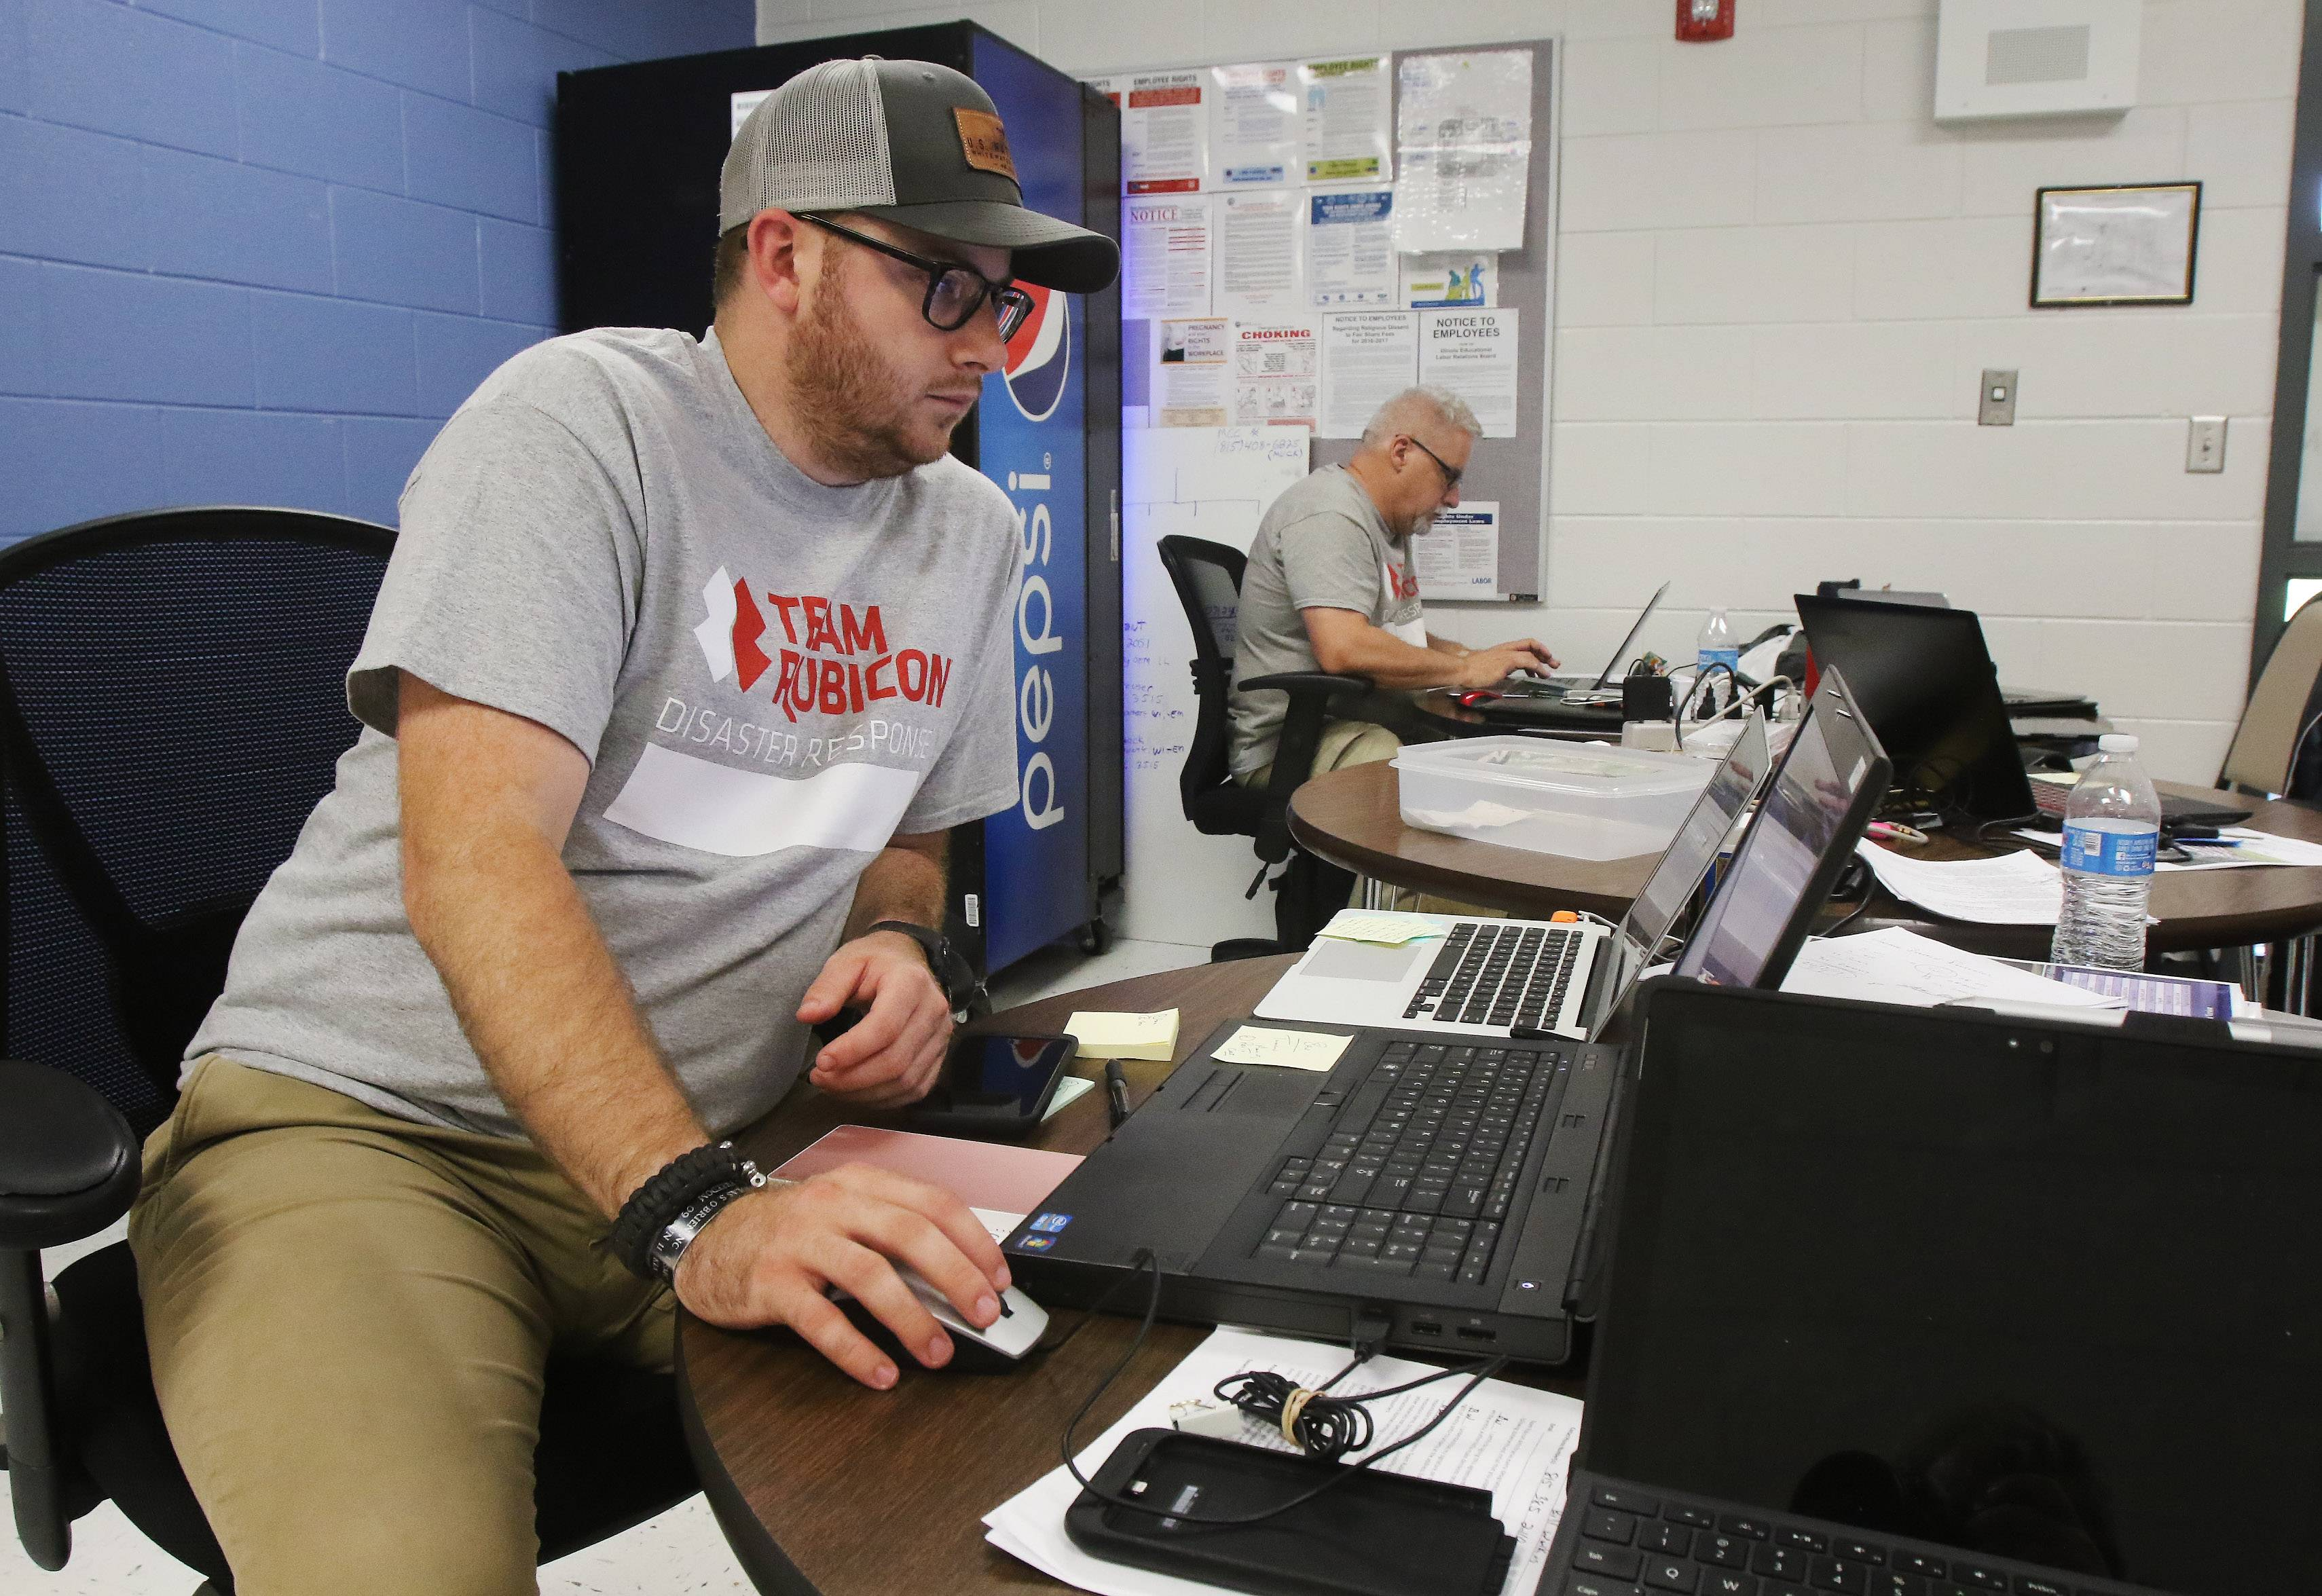 Firefighter Aaron Marshall of Atlanta works in the Team Rubicon command center at Johnsburg Junior High School on Tuesday as part of Operation Fox Yeah to help suburban residents who suffered losses in this month's record floods.